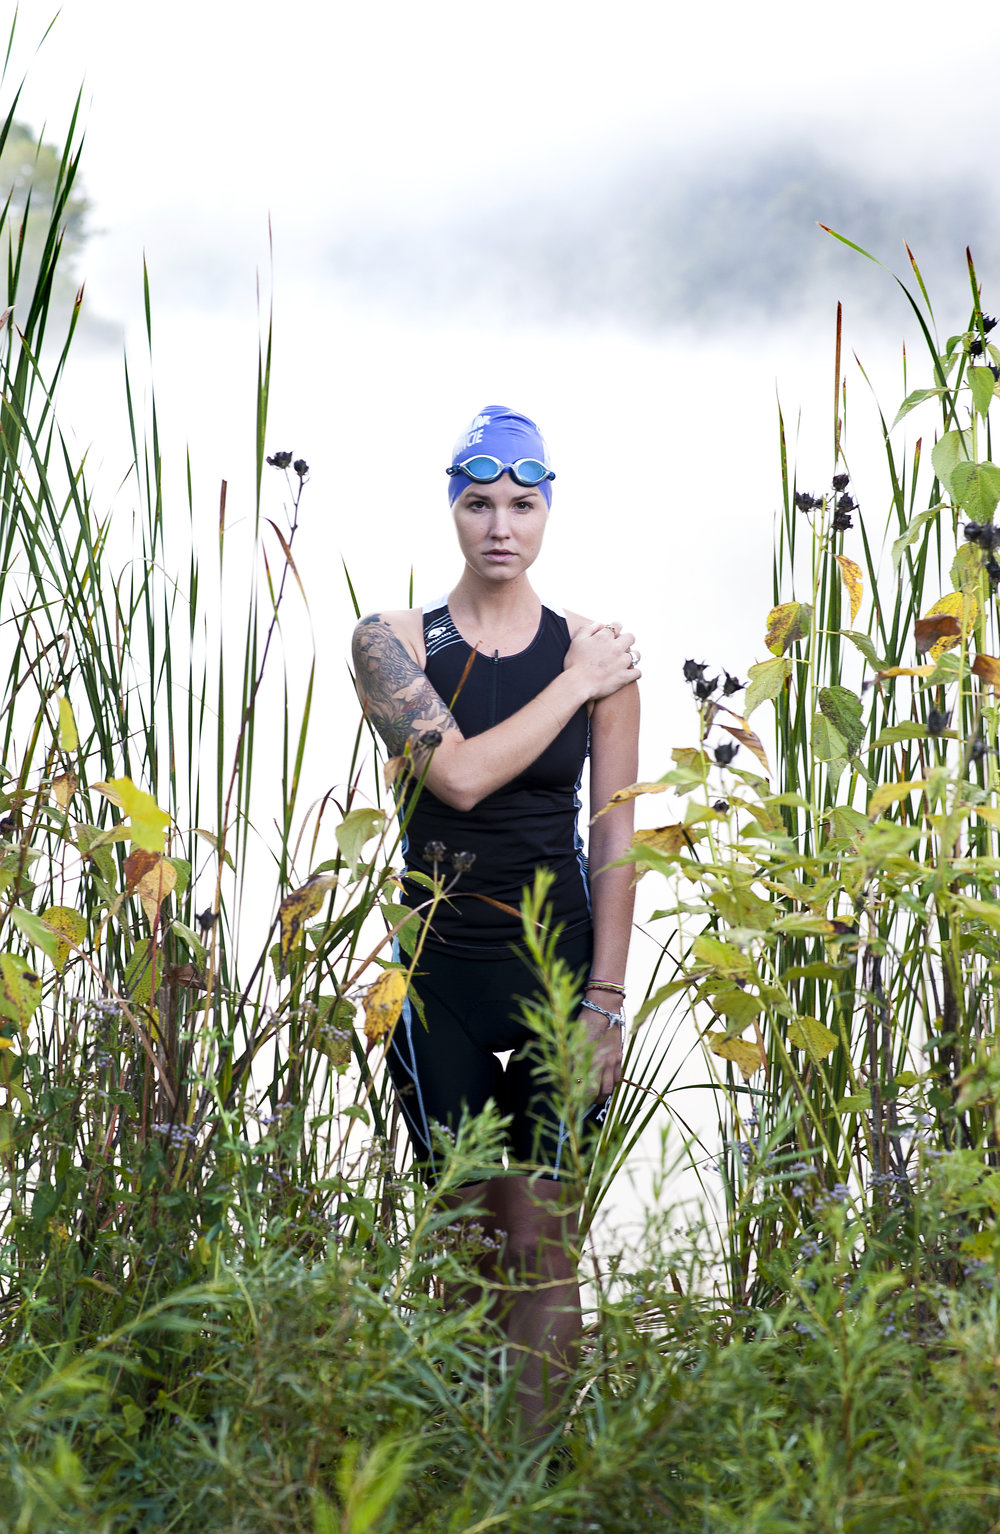 Triathlete Olivia Harlow poses for a portrait at Strouds Run State Park, where she often swims in the lake to practice.